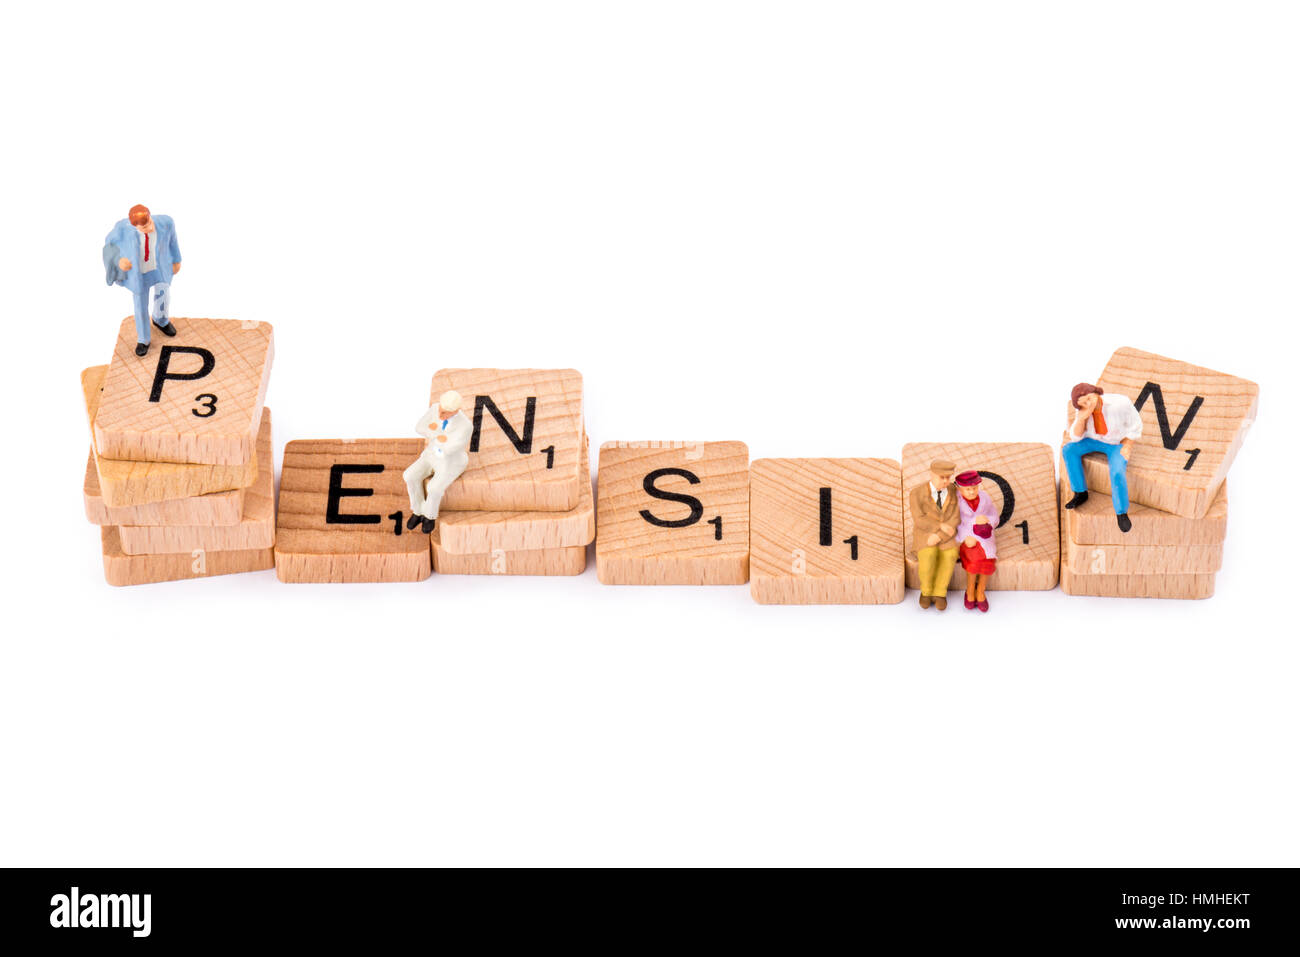 Scrabble letters make up the word PENSION. Figures stand or sit on various letters. - Stock Image